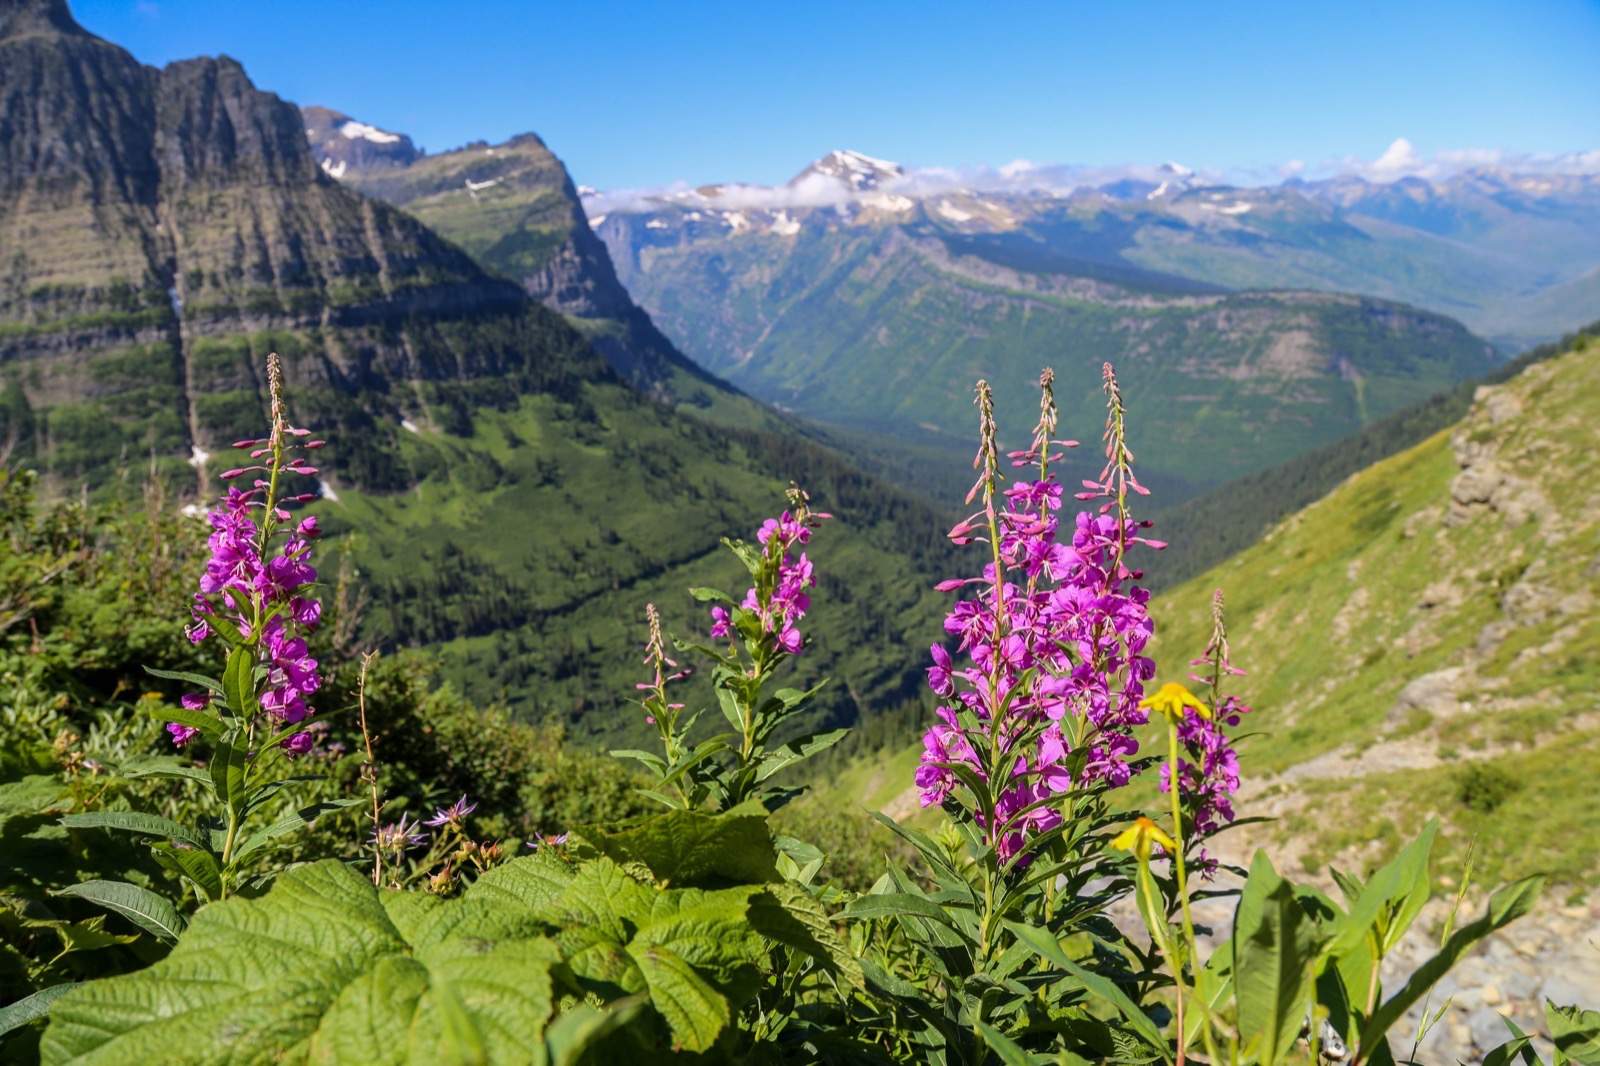 Pink wildflowers in foreground, rugged mountain valley in background in western Montana.